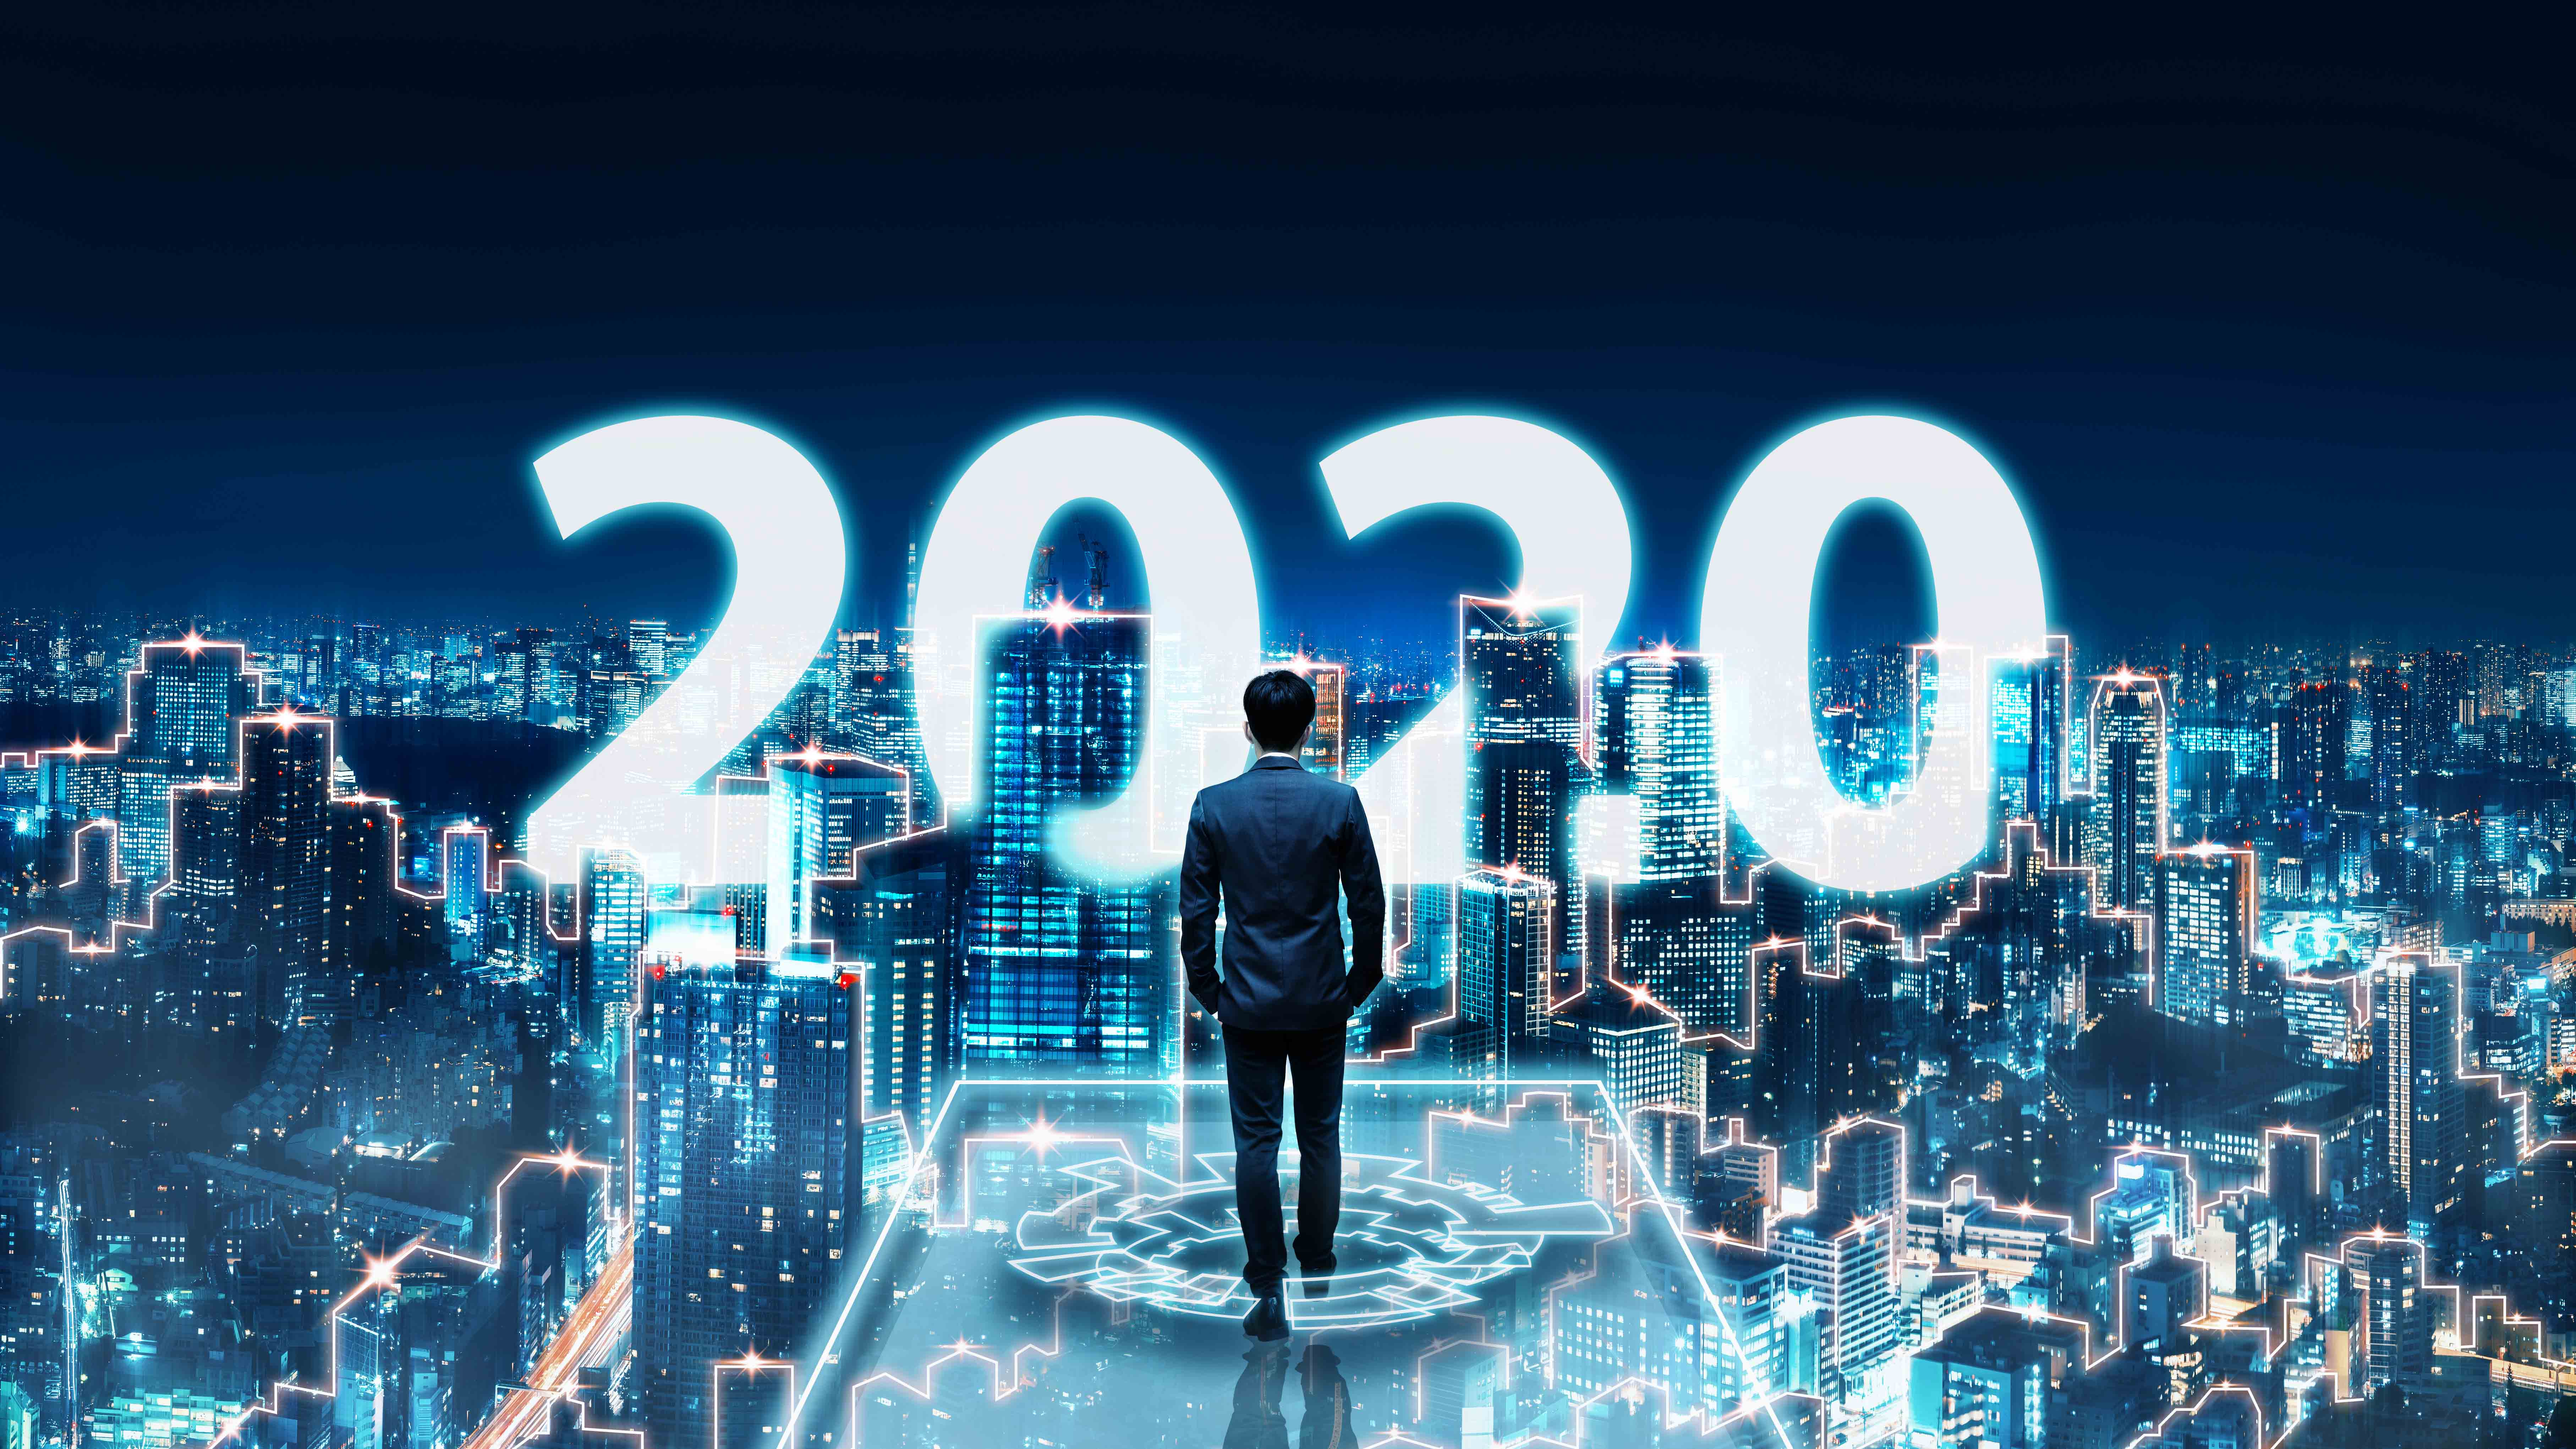 2020 IT Goals: Collaboration, Disruption, and Owning Your Data